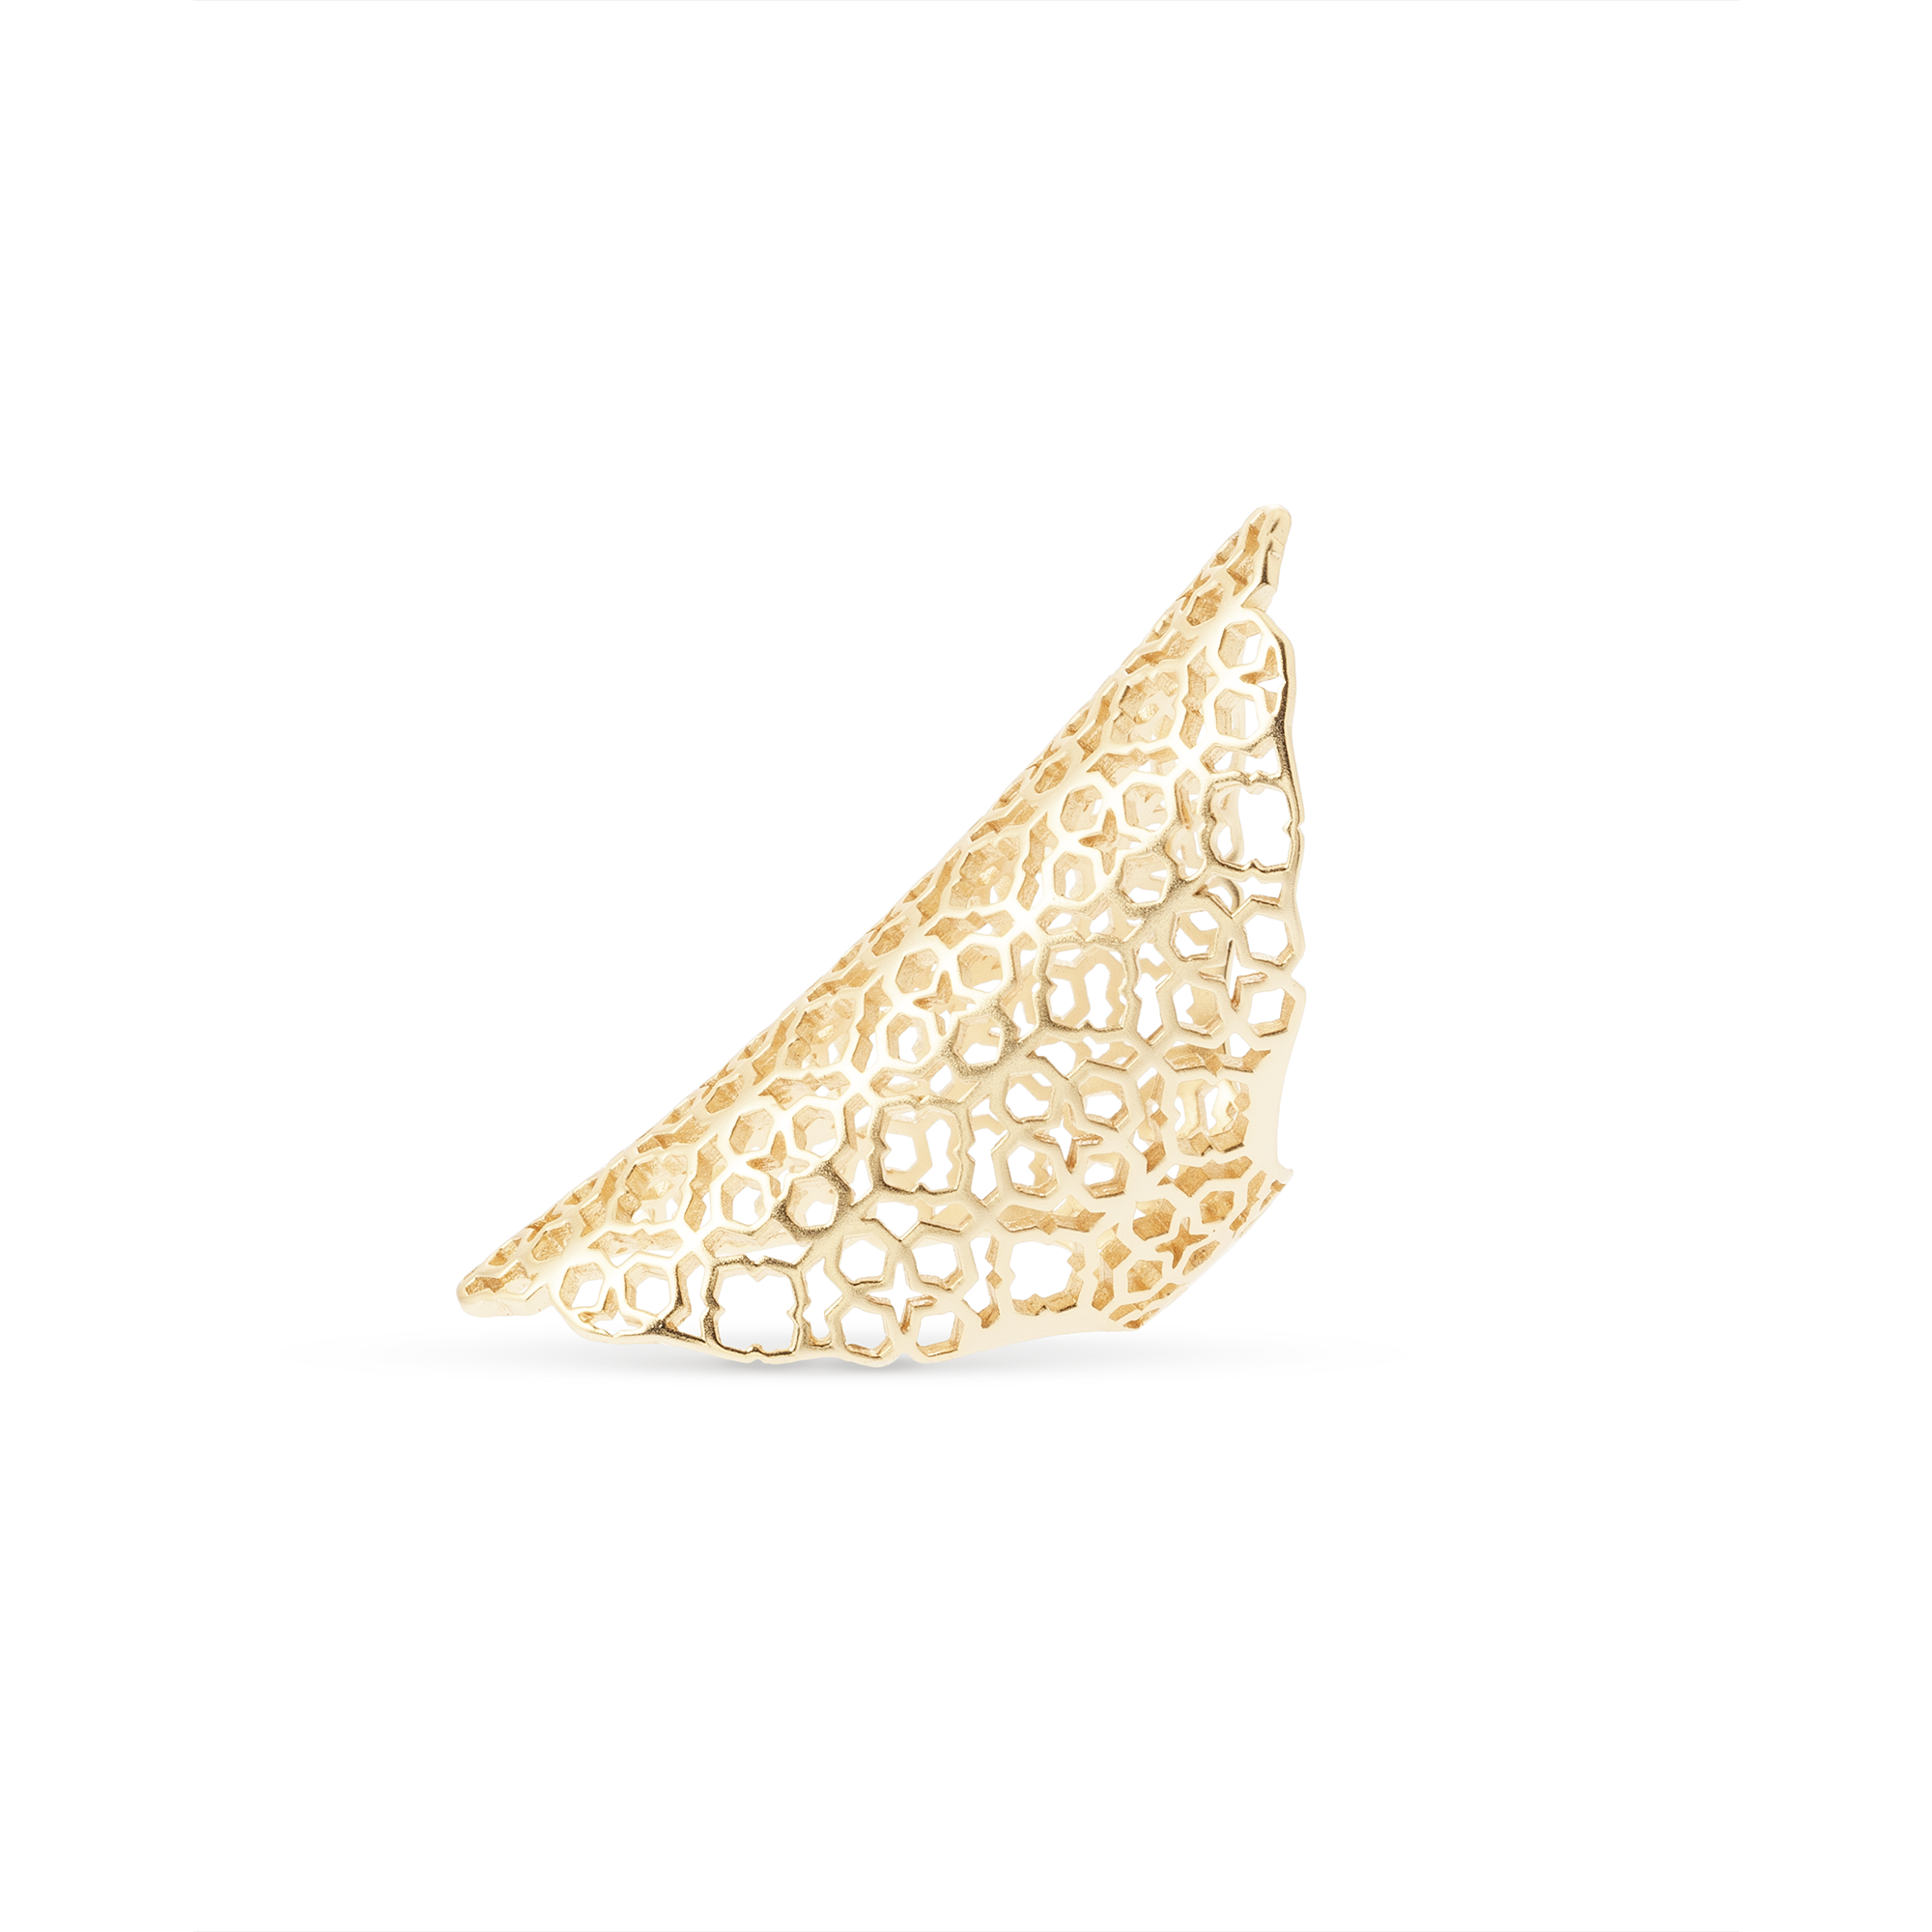 Kendra Scott - Boone Cocktail Ring in Gold, Side View